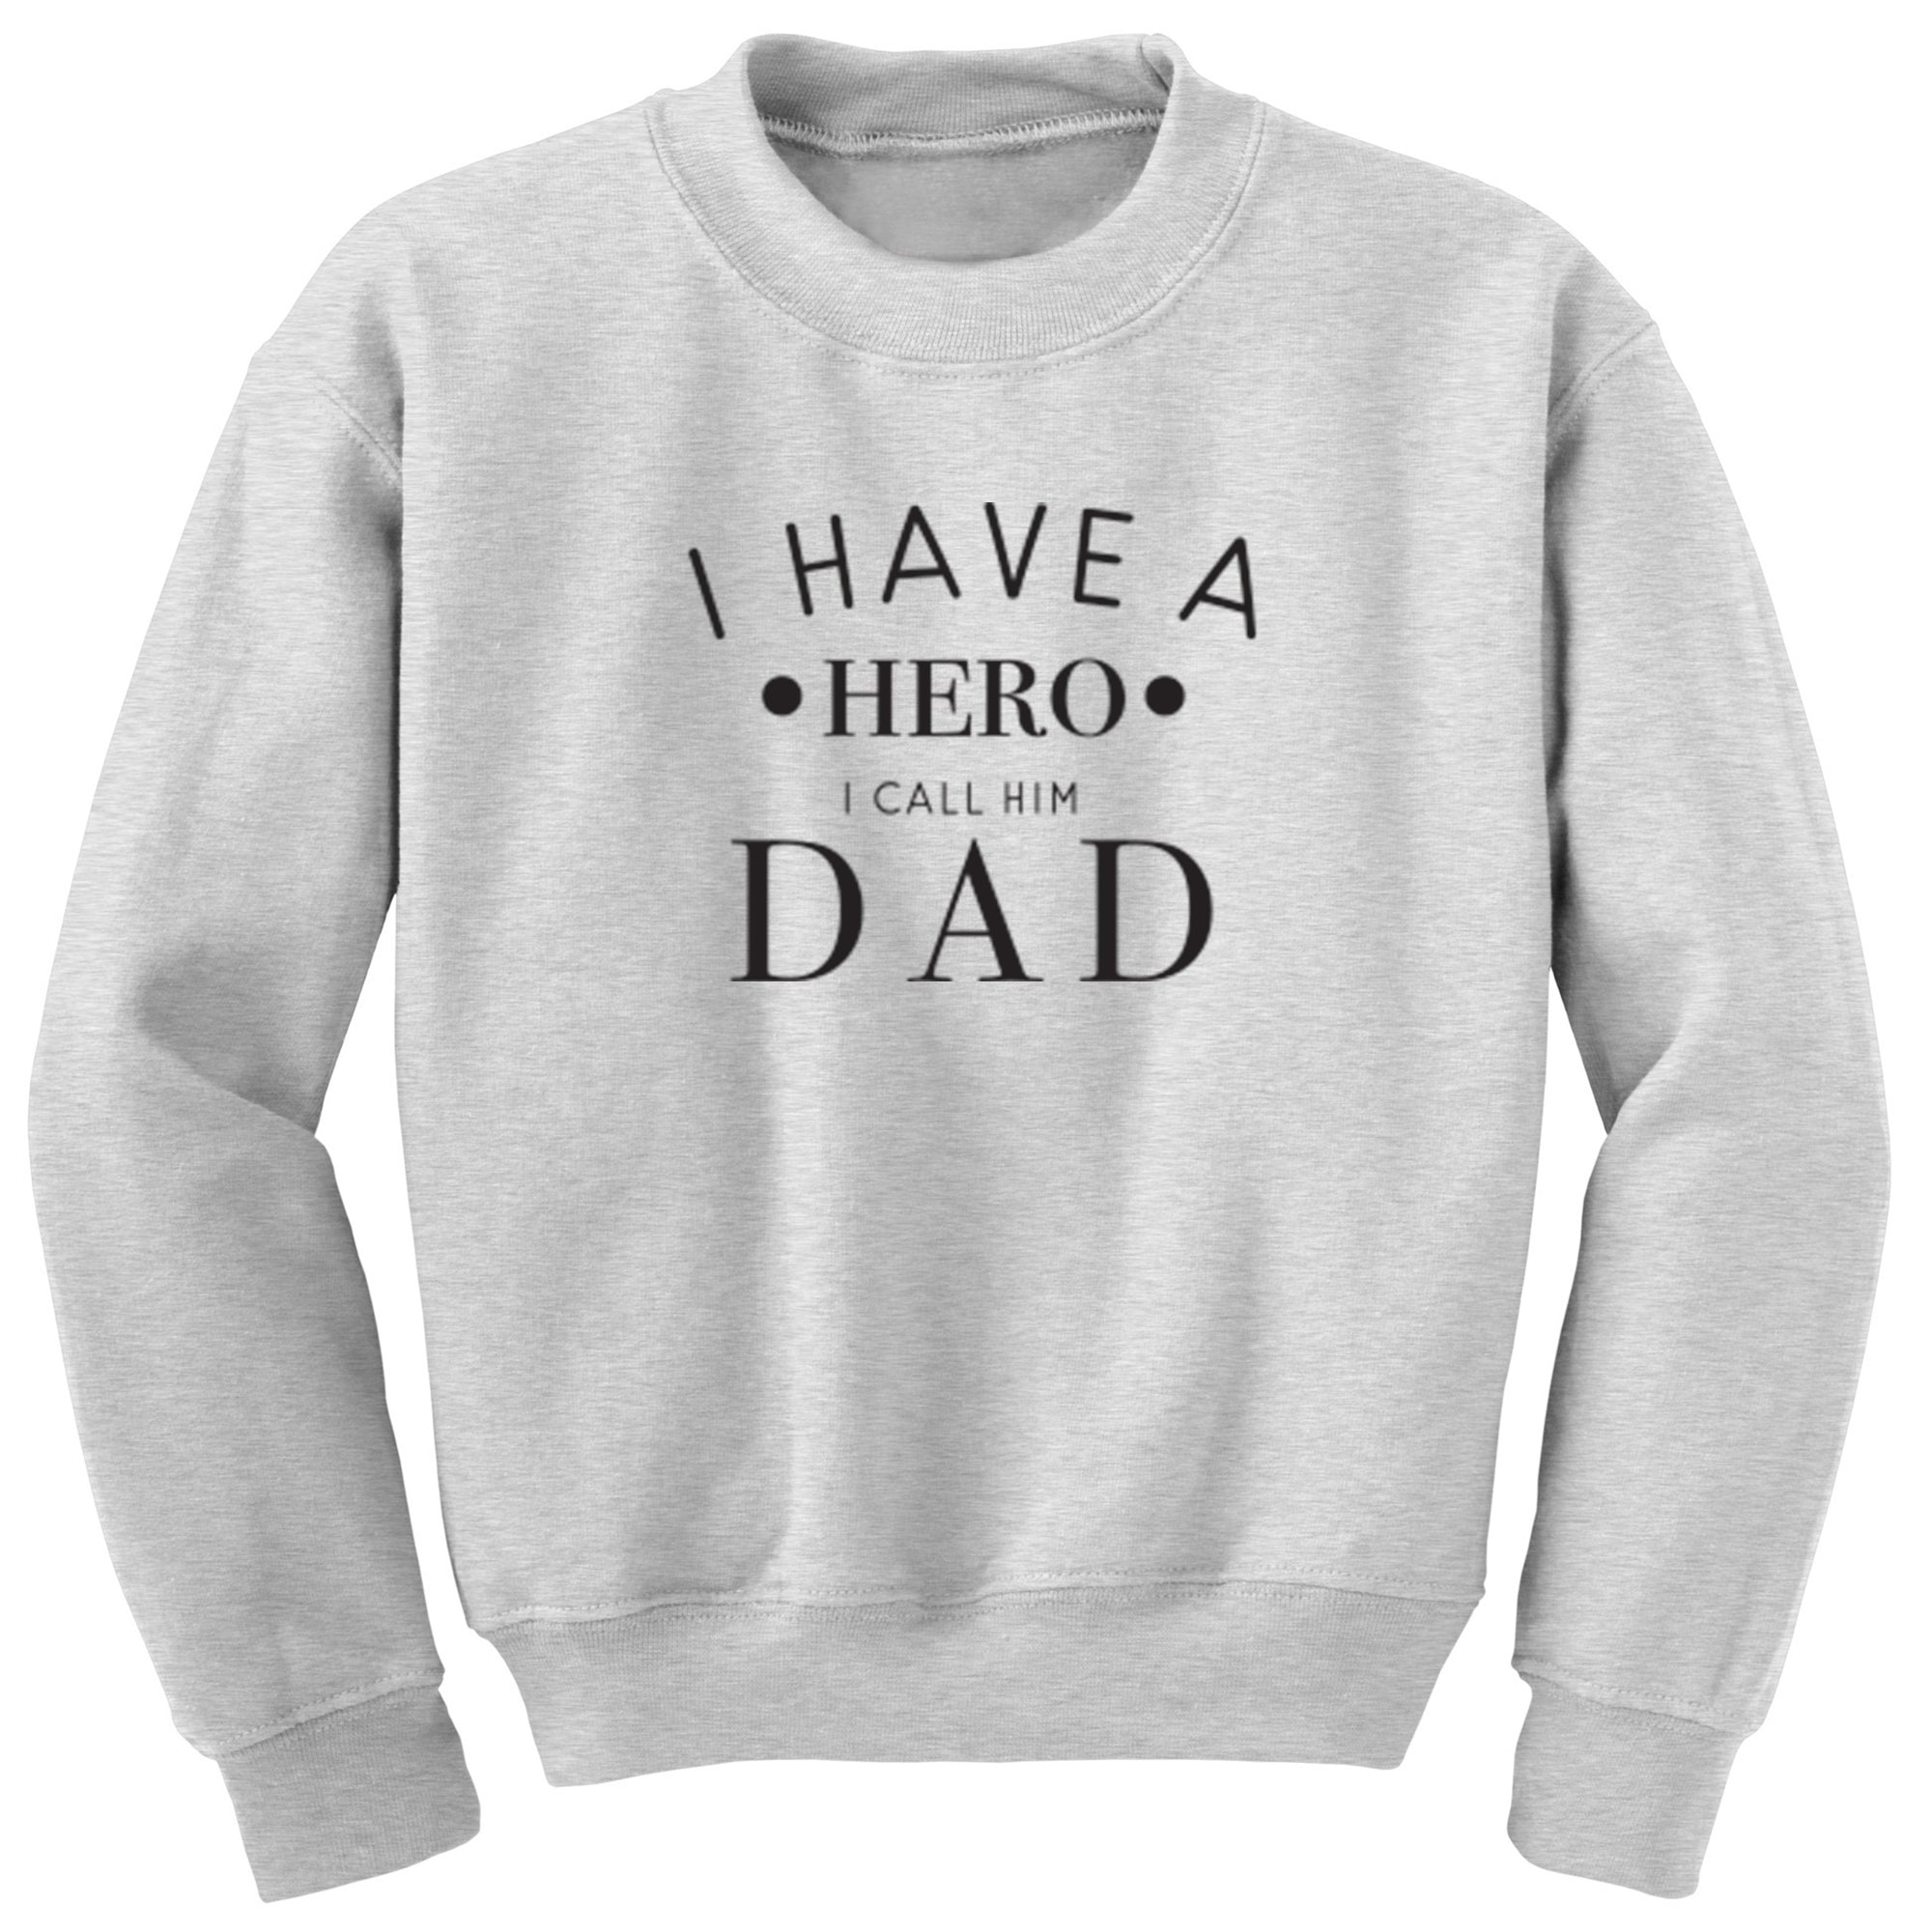 I Have A Hero I Call Him Dad Childrens Ages 3/4-12/14 Unisex Jumper S0720 - Illustrated Identity Ltd.